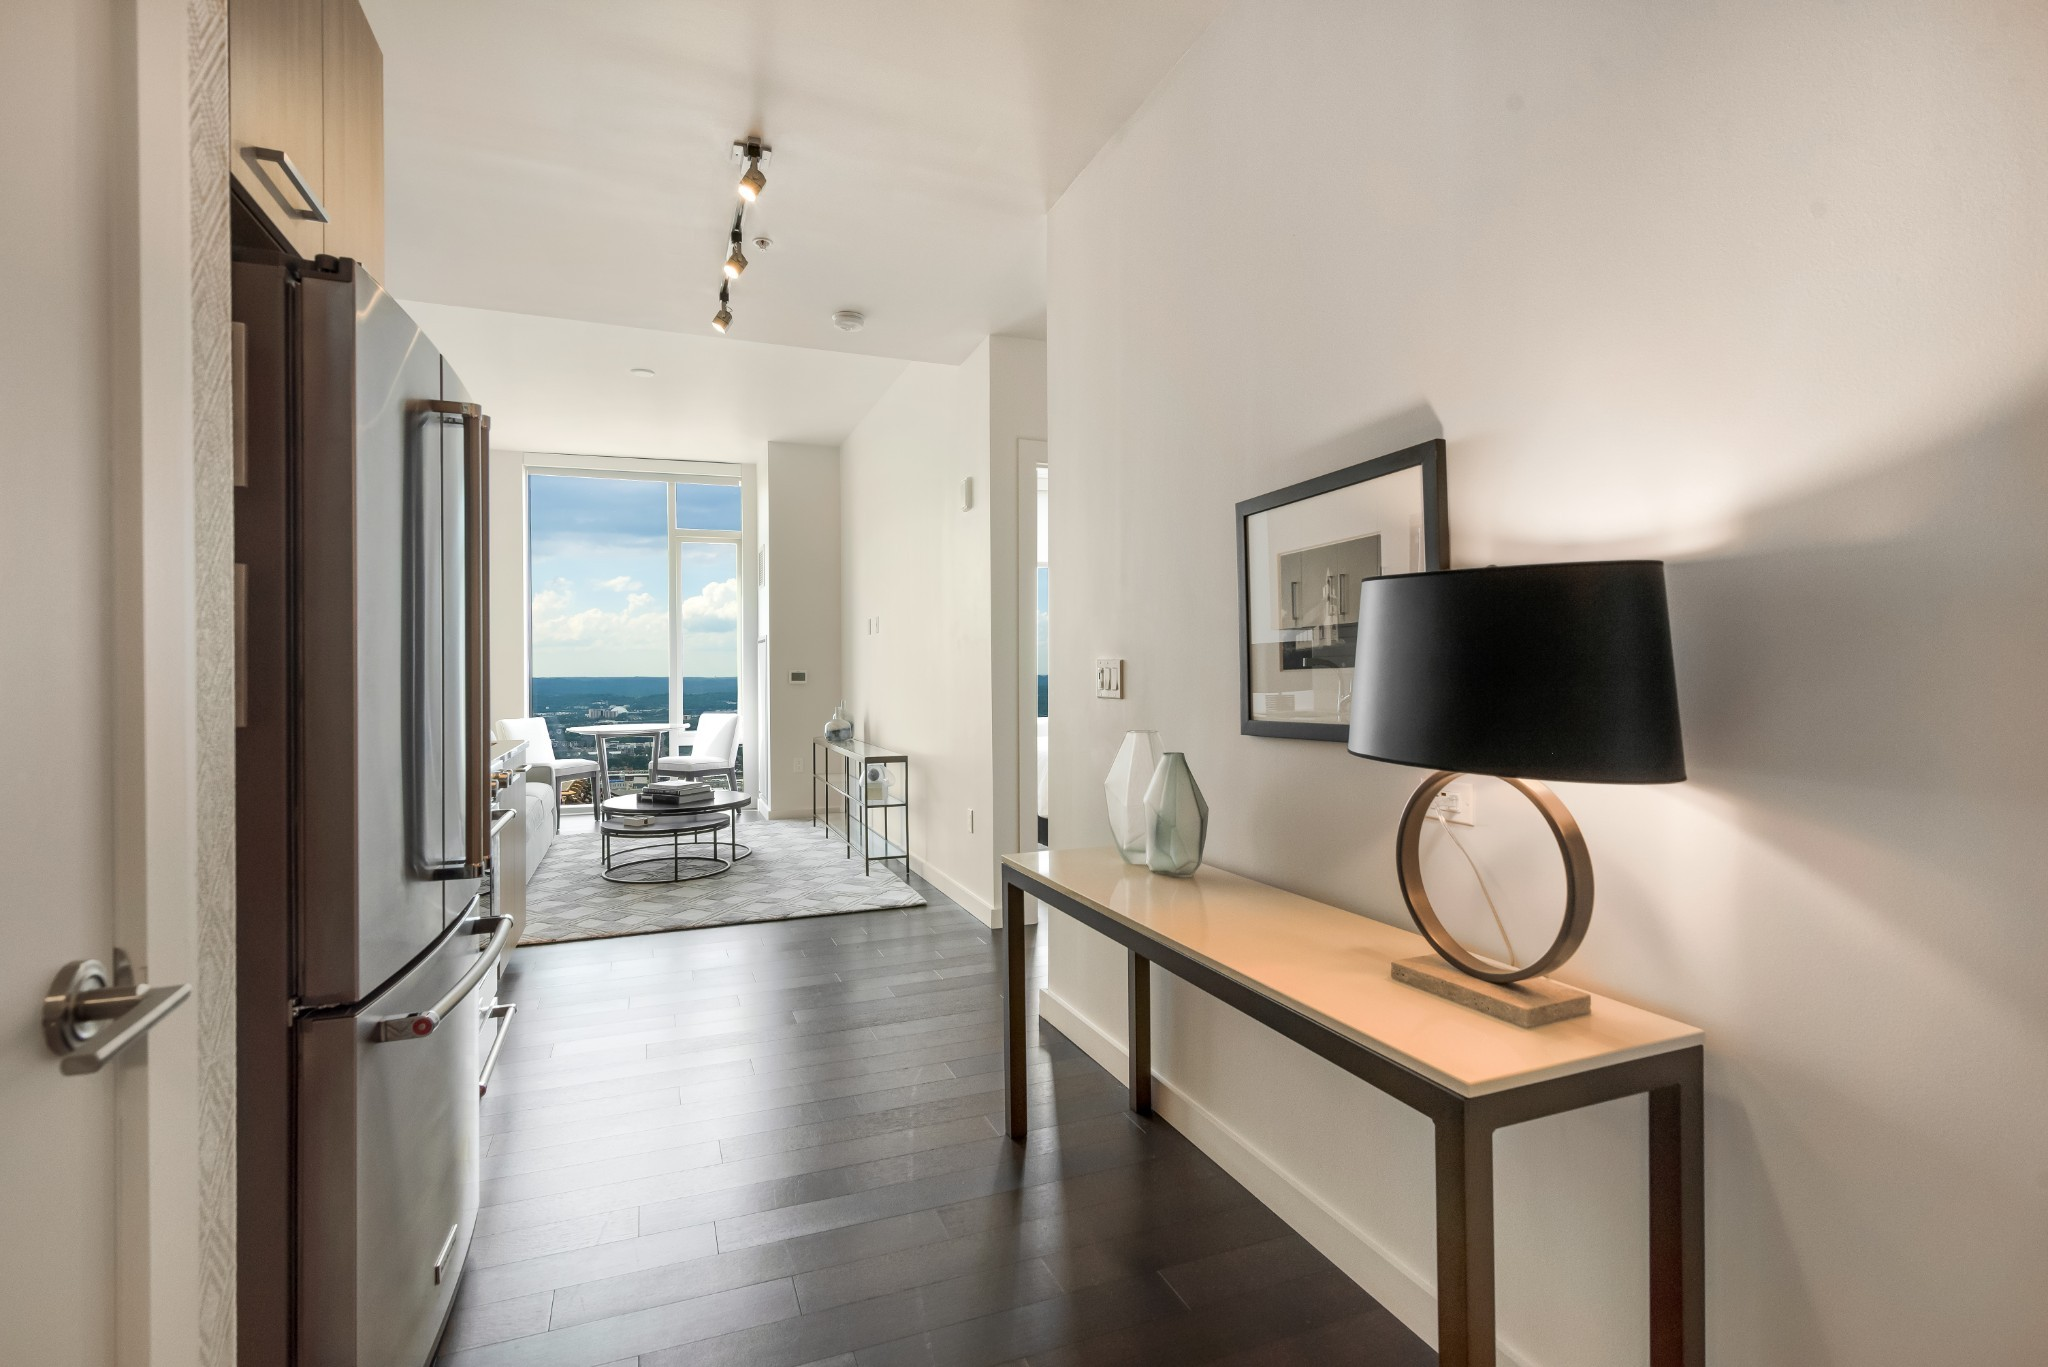 Modern elegance and timeless sophistication at the unparalleled 505 high-rise. Beautifully appointed 1-BR with breathtaking wall-to-wall views of Nashville's iconic skyline and distant hilltops. Resort-style pool, cabanas, tennis, Technogym fitness center, dog park. Exclusive owners-only wine cellar, lounge, dining room with catering kitchen and fitness room. Located in the epicenter of all downtown activities. Walk to music, theater, sports and restaurants.